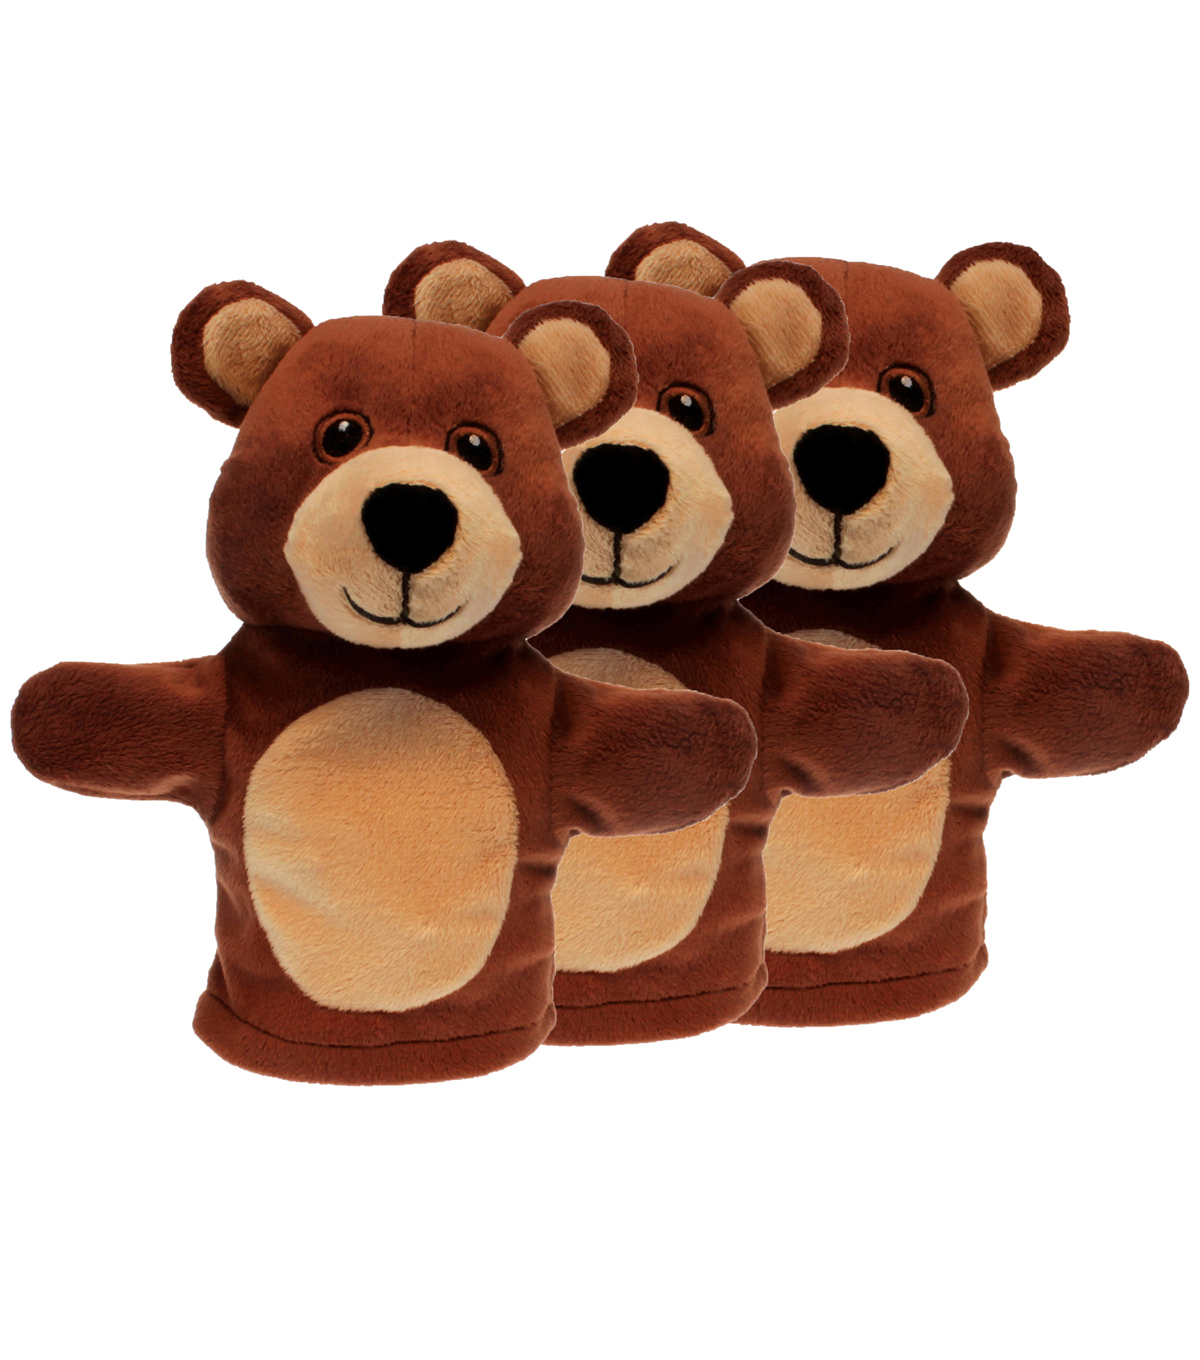 Bear - My First Puppets, Pack of 3